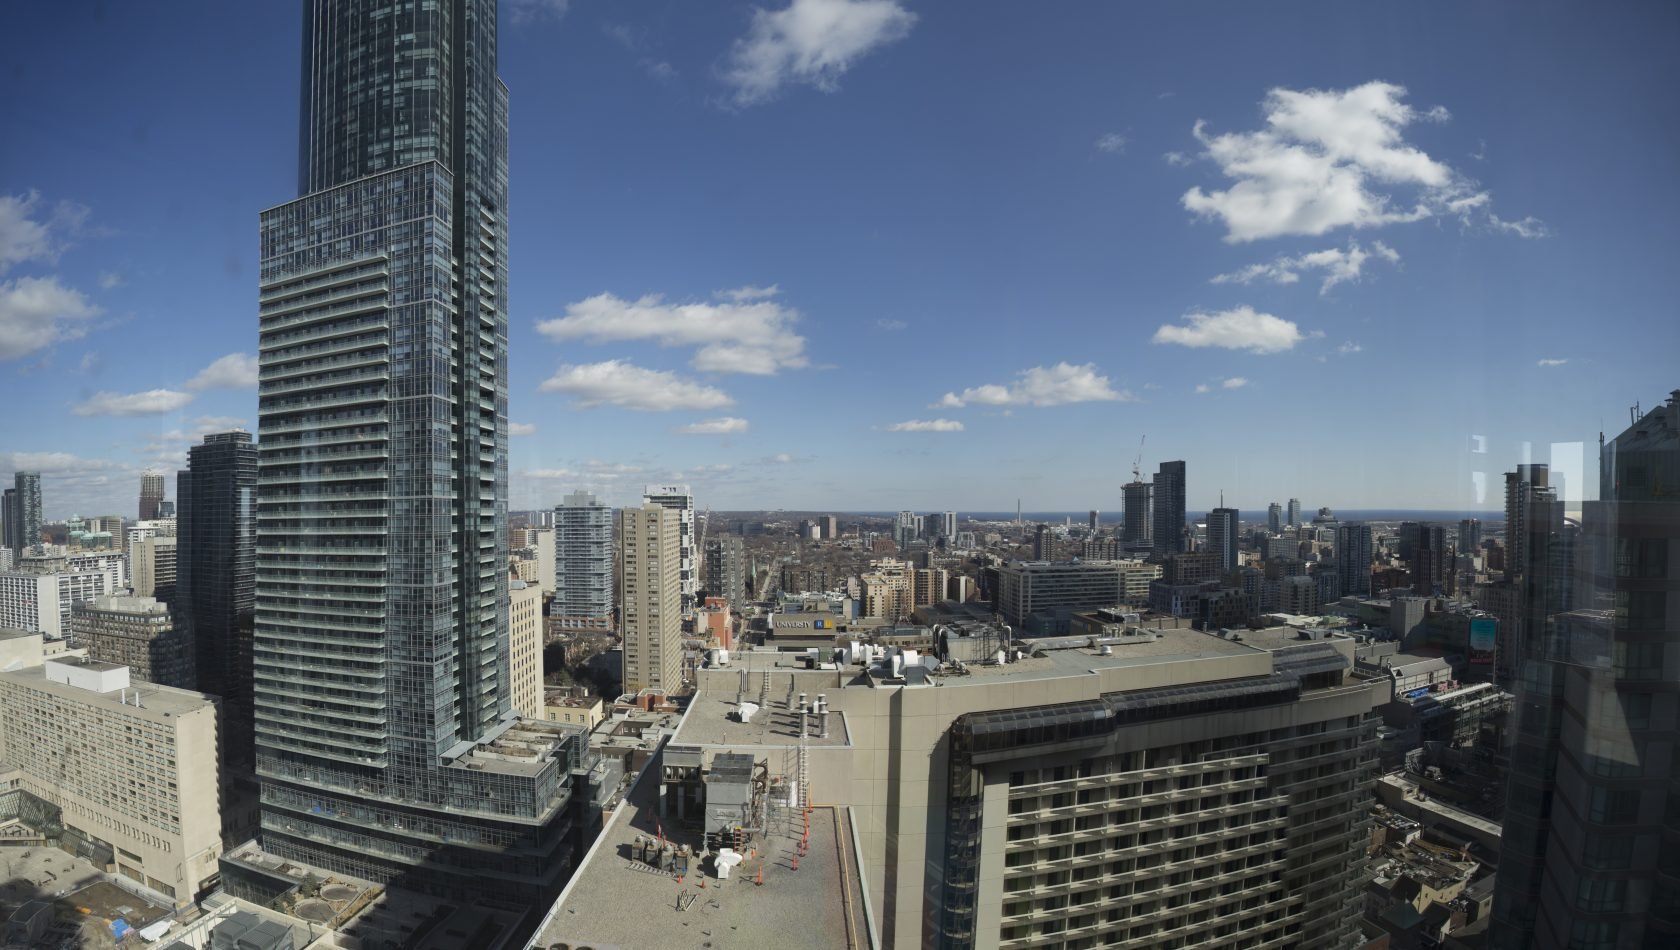 East side view from 30th floor